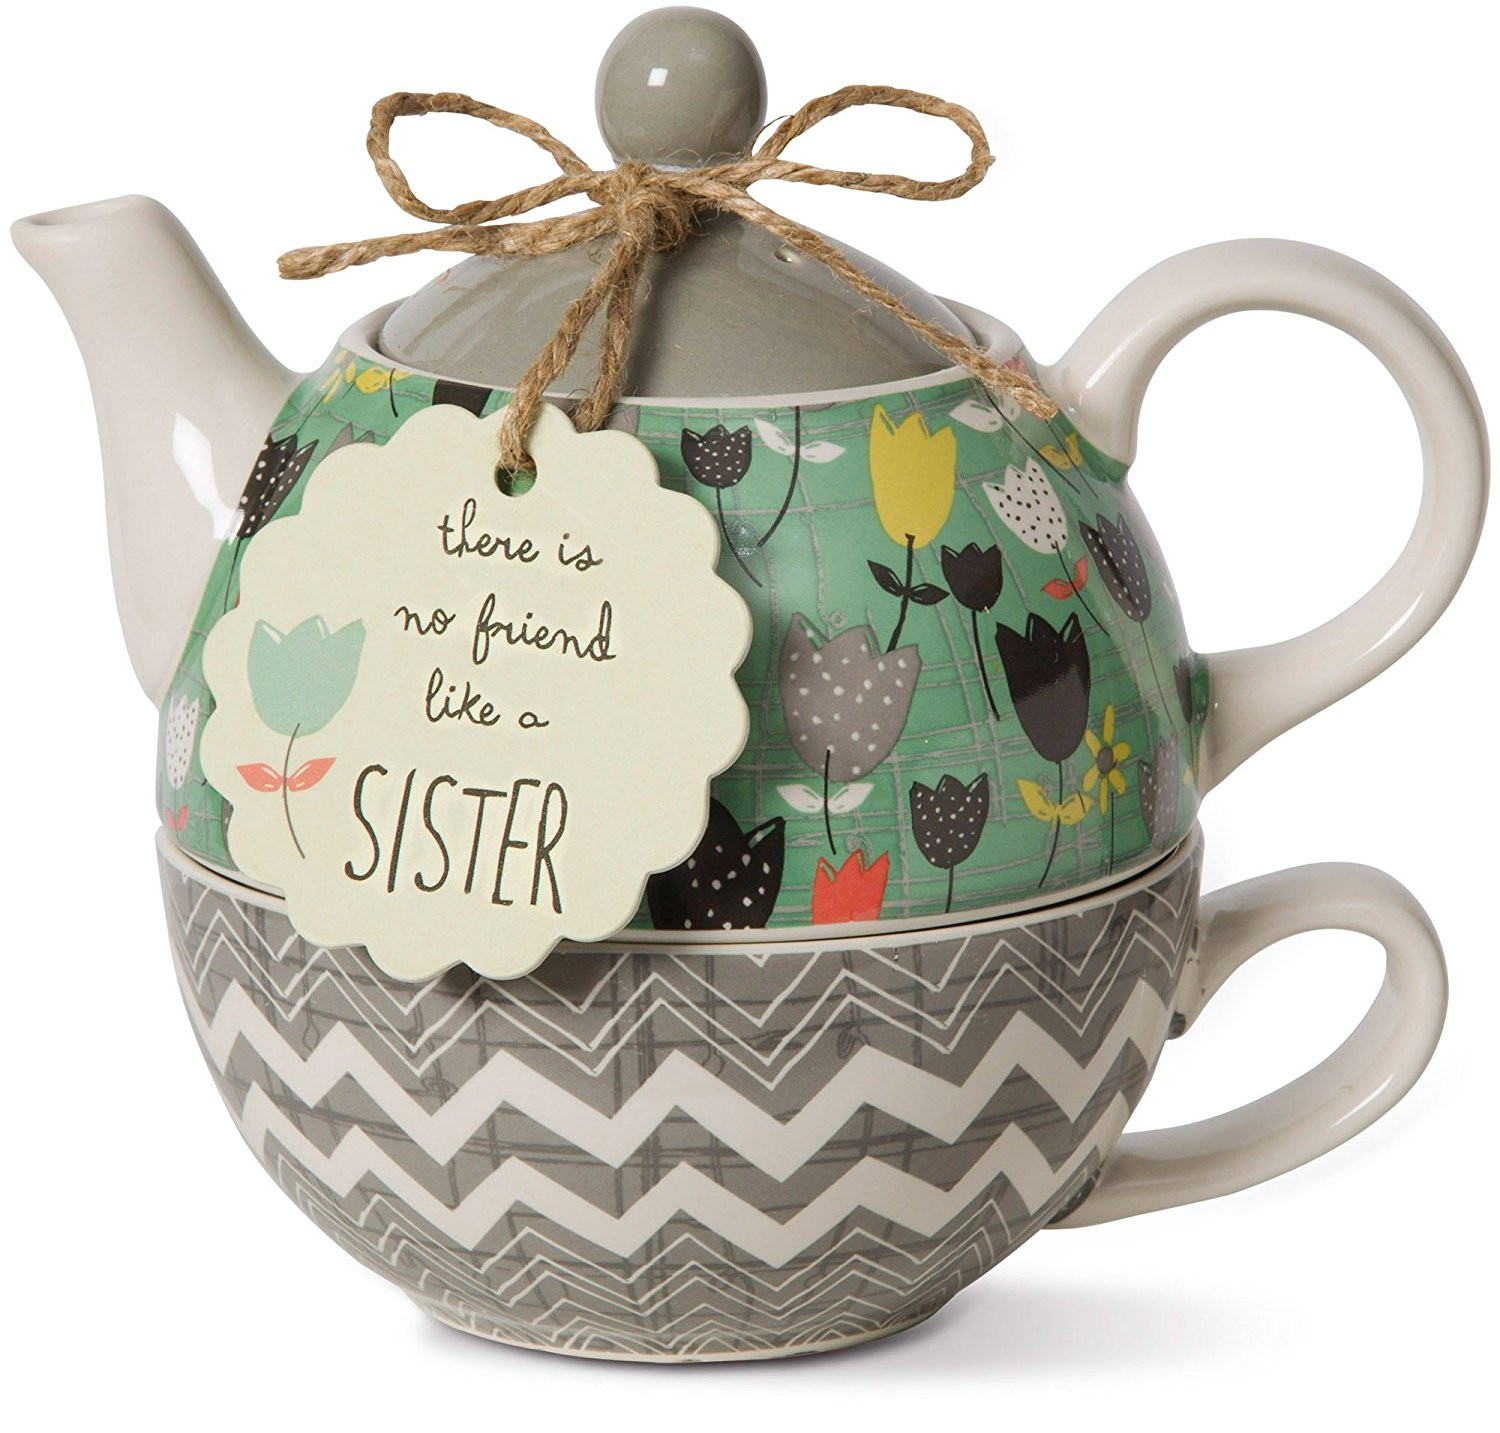 Best ideas about Sister Birthday Gift Ideas . Save or Pin 105 Perfect Birthday Gift Ideas for Sister Now.